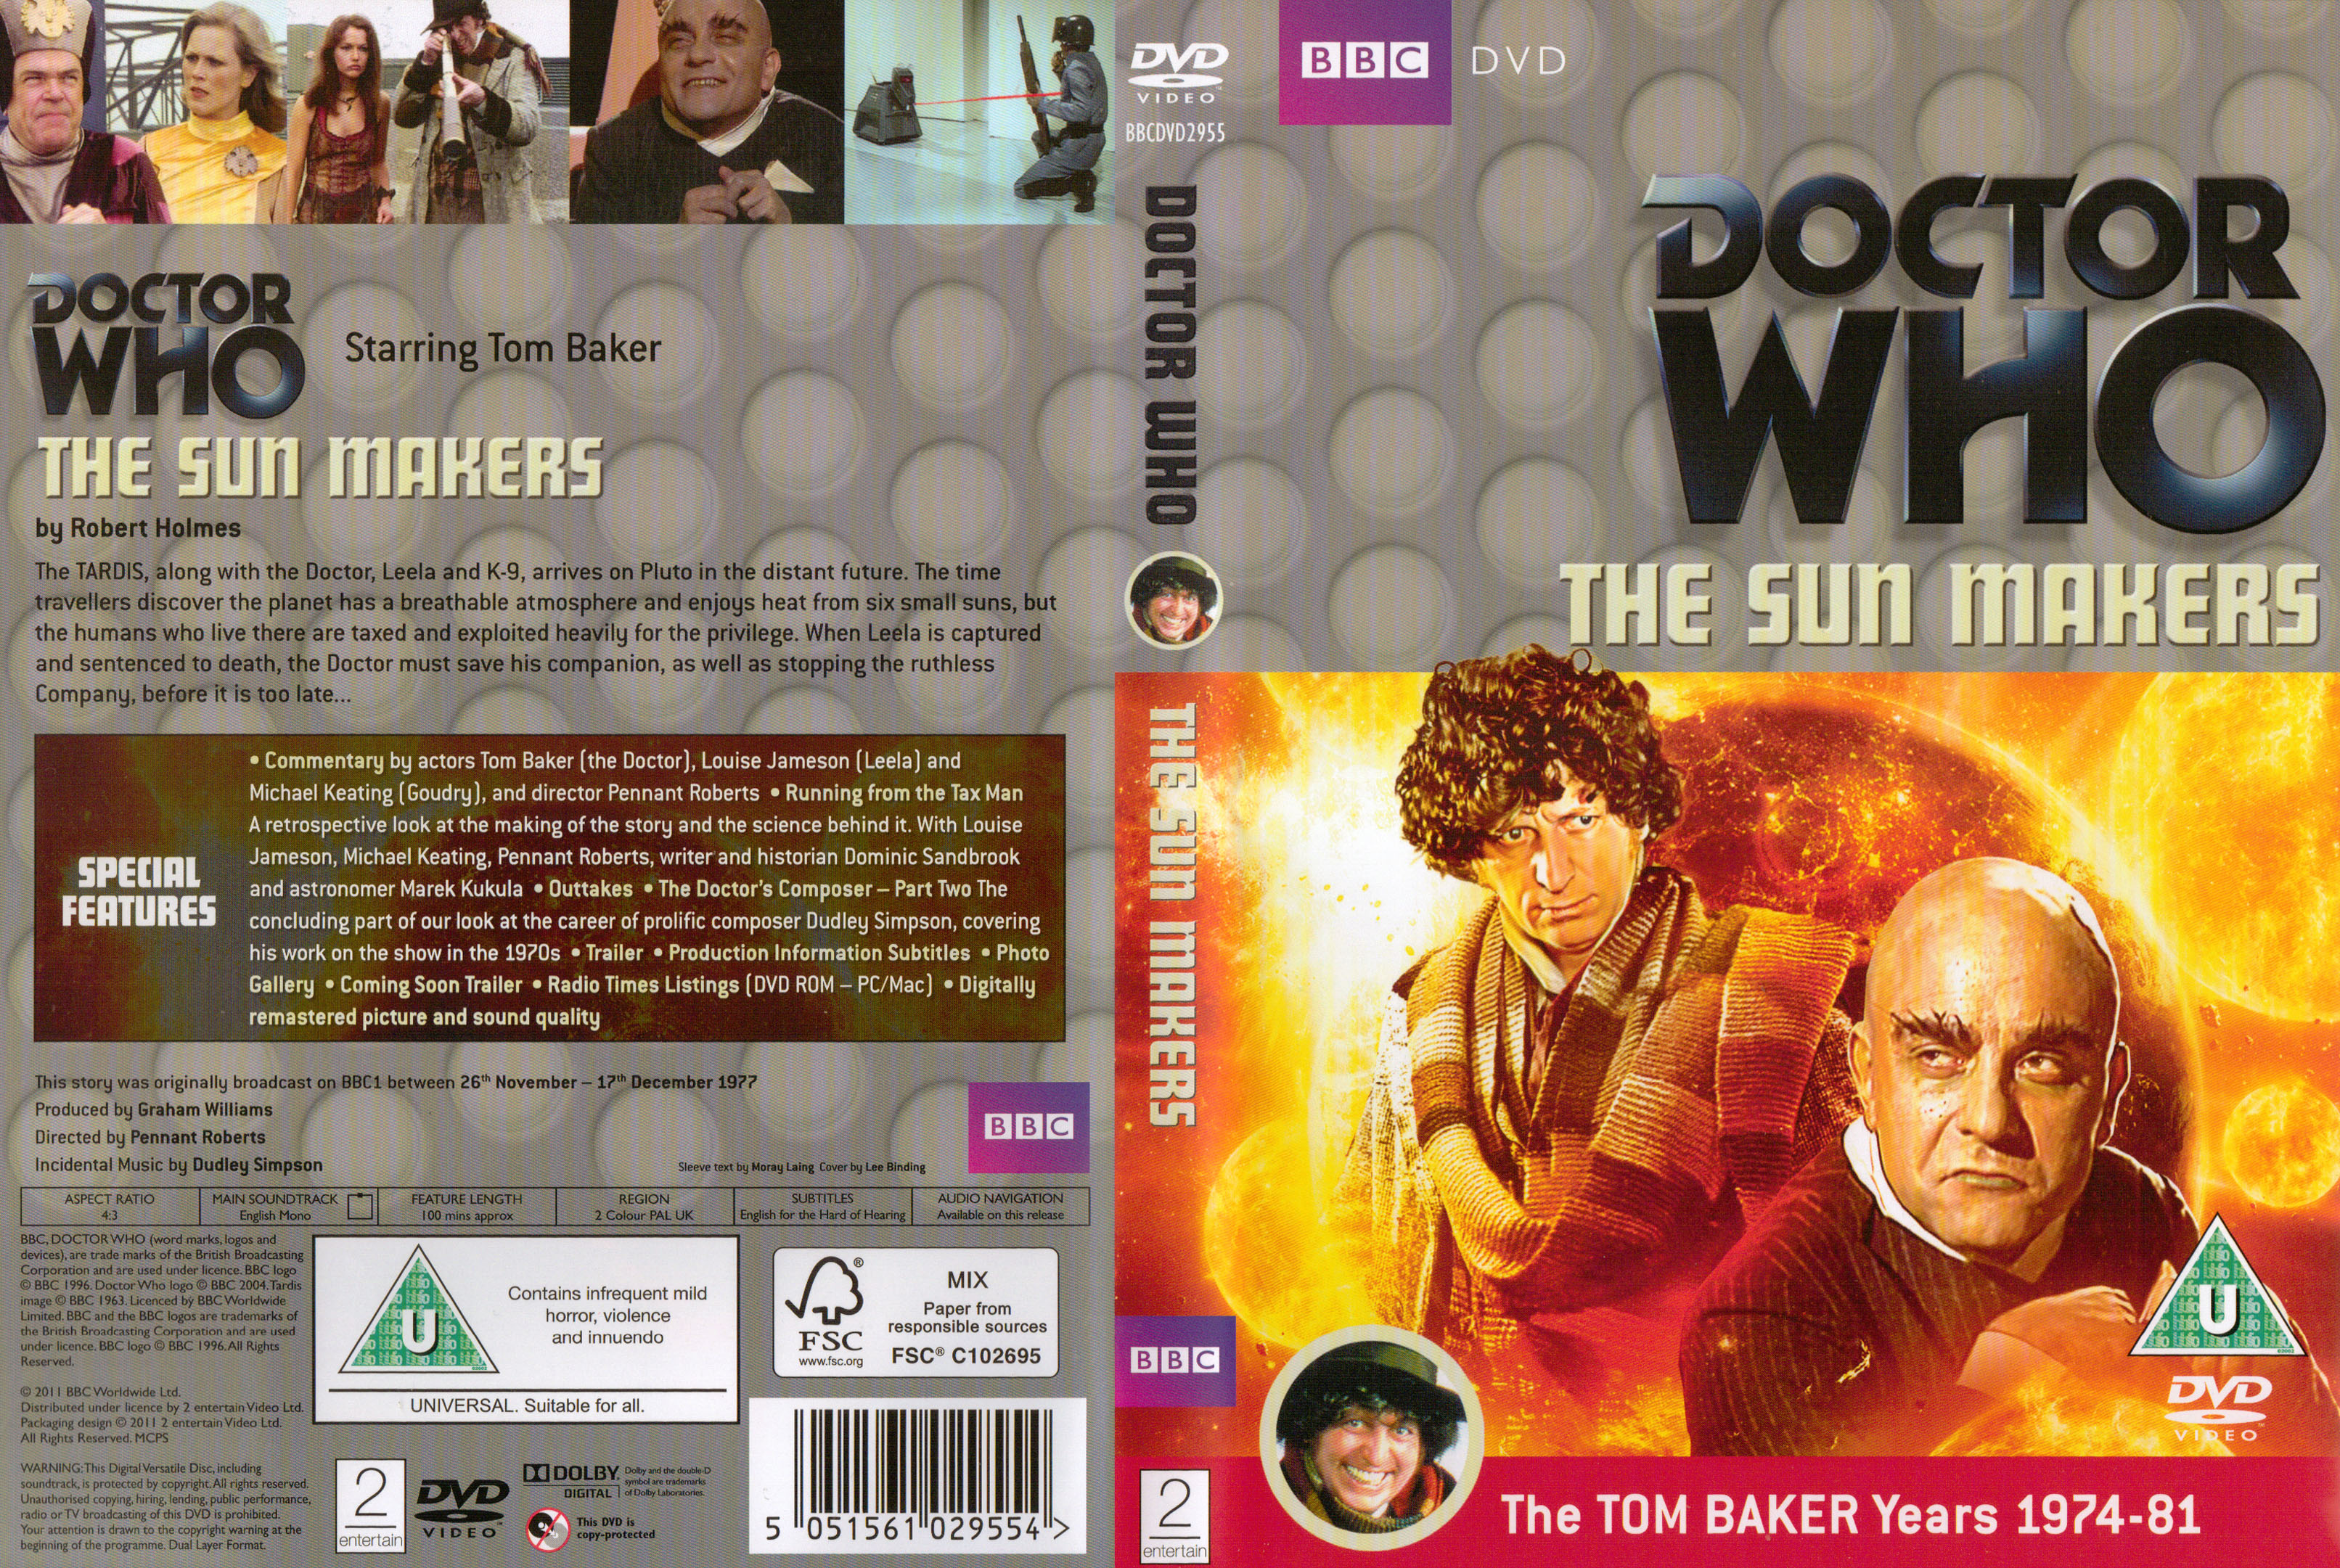 The Sun Makers DVD